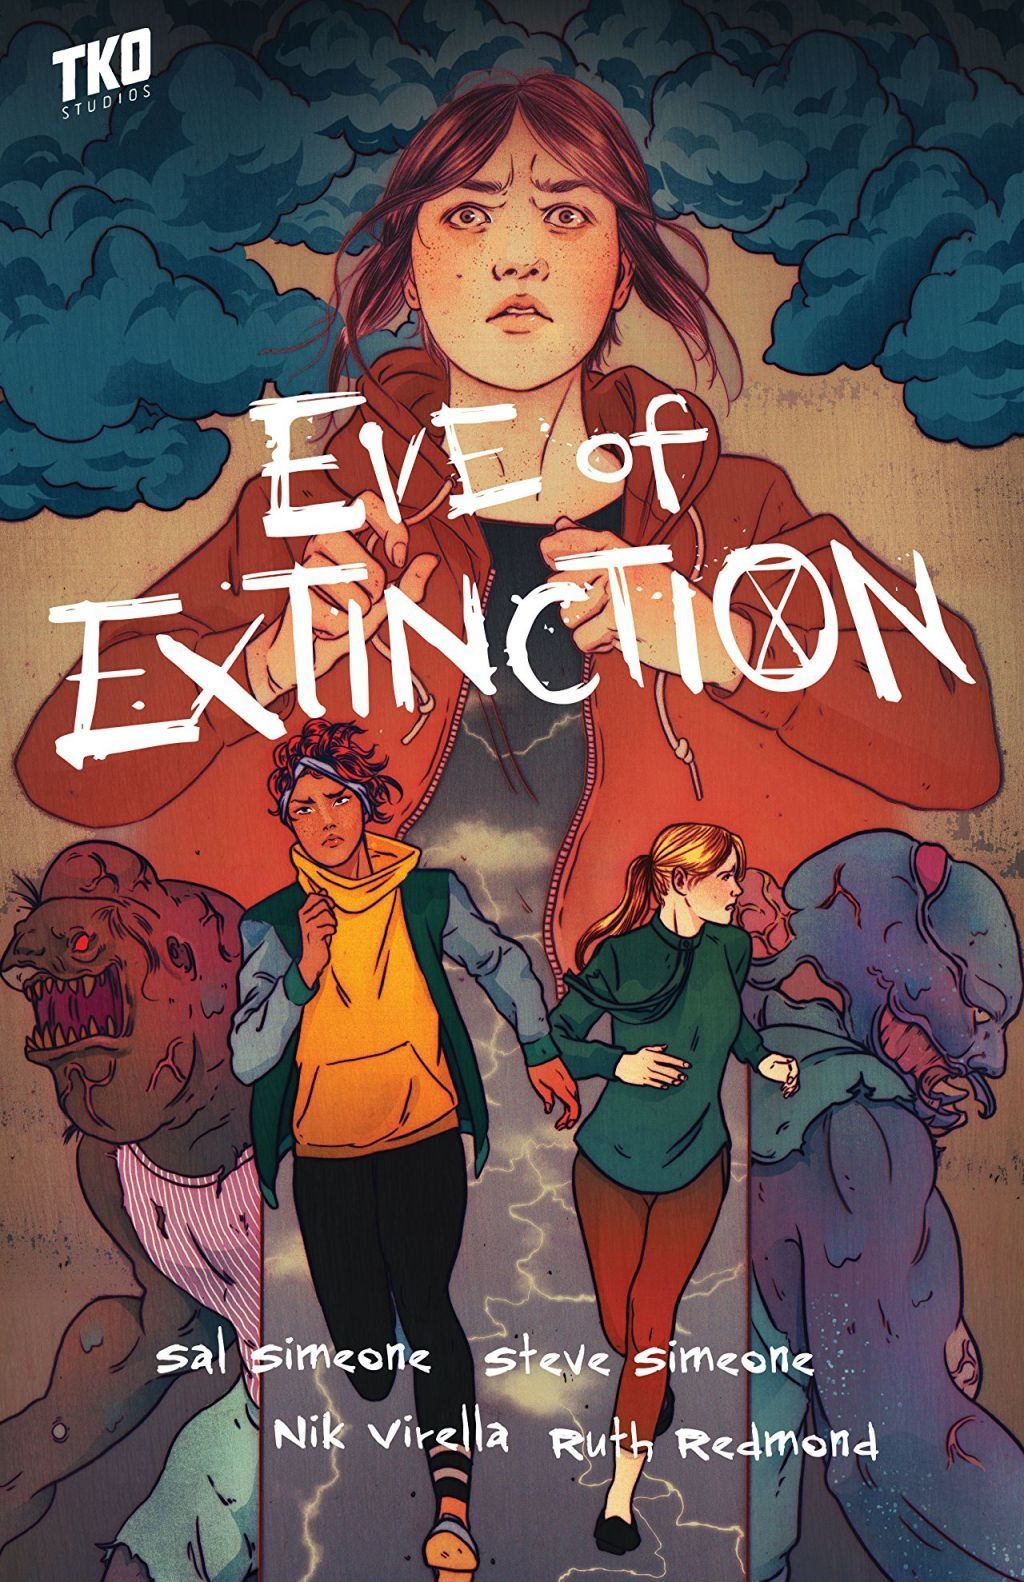 The cover of Eve of Extinction, a comic book series under TKO Studios (2019-2020).